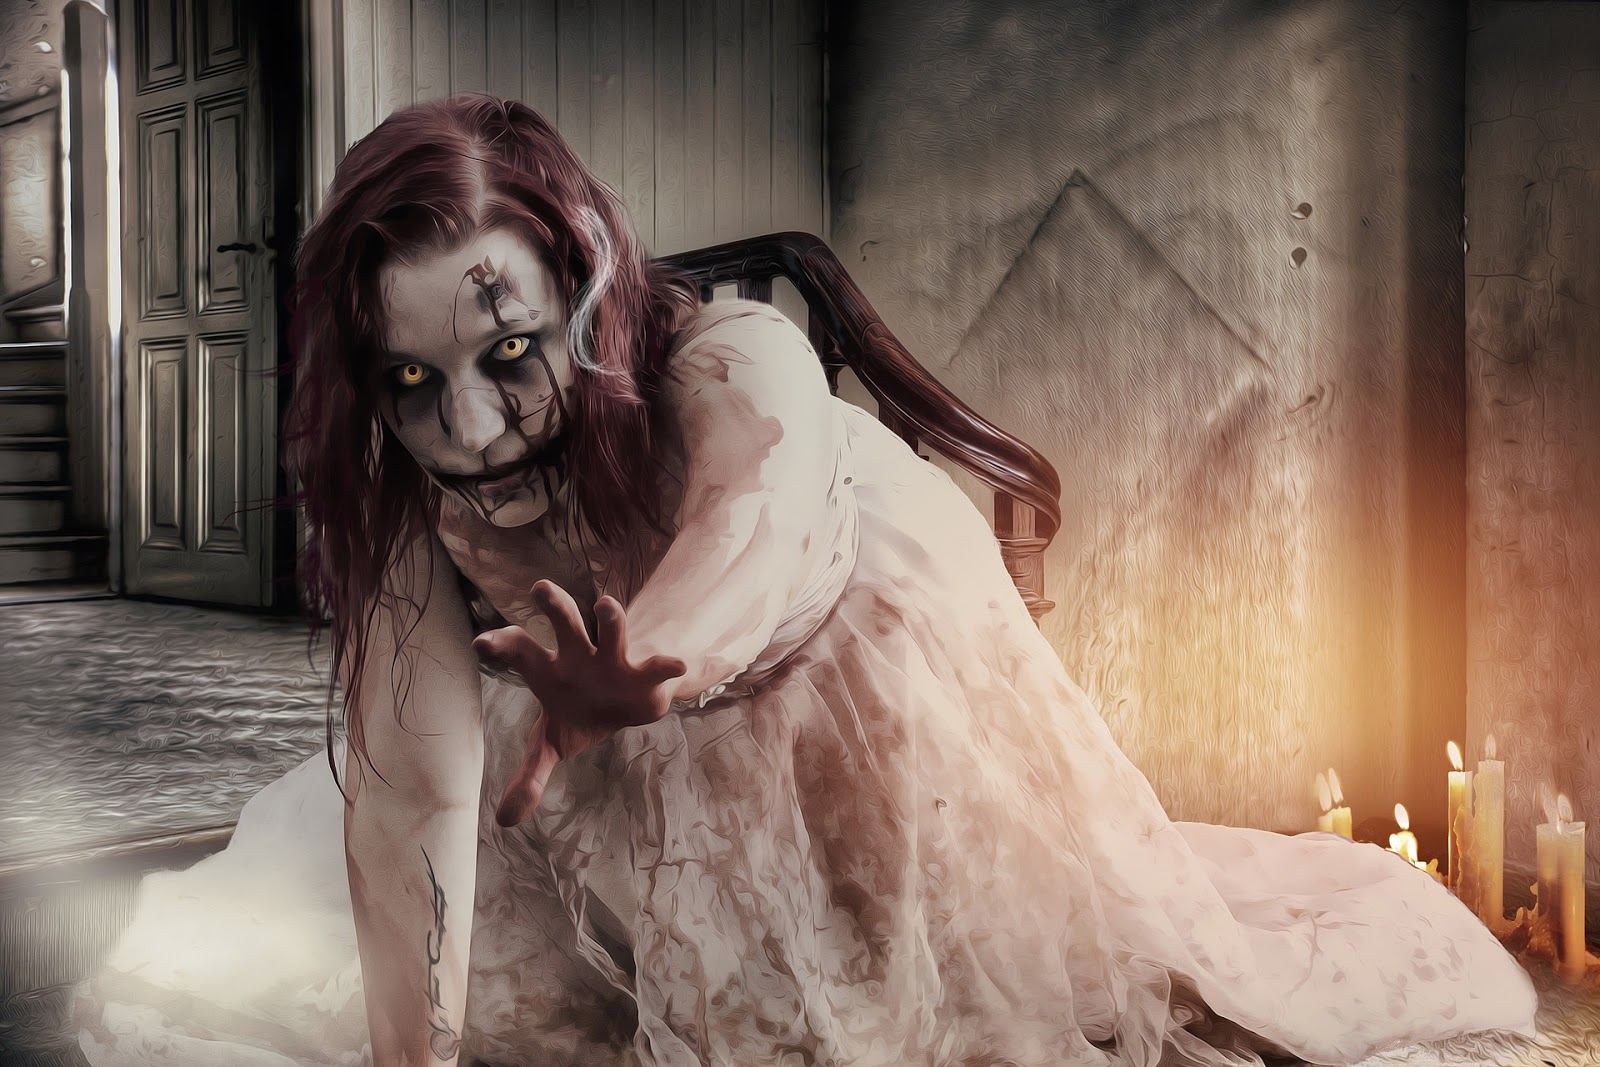 young female zombie in white dress crawls toward the camera to illlustrate blog post about zombie war movies